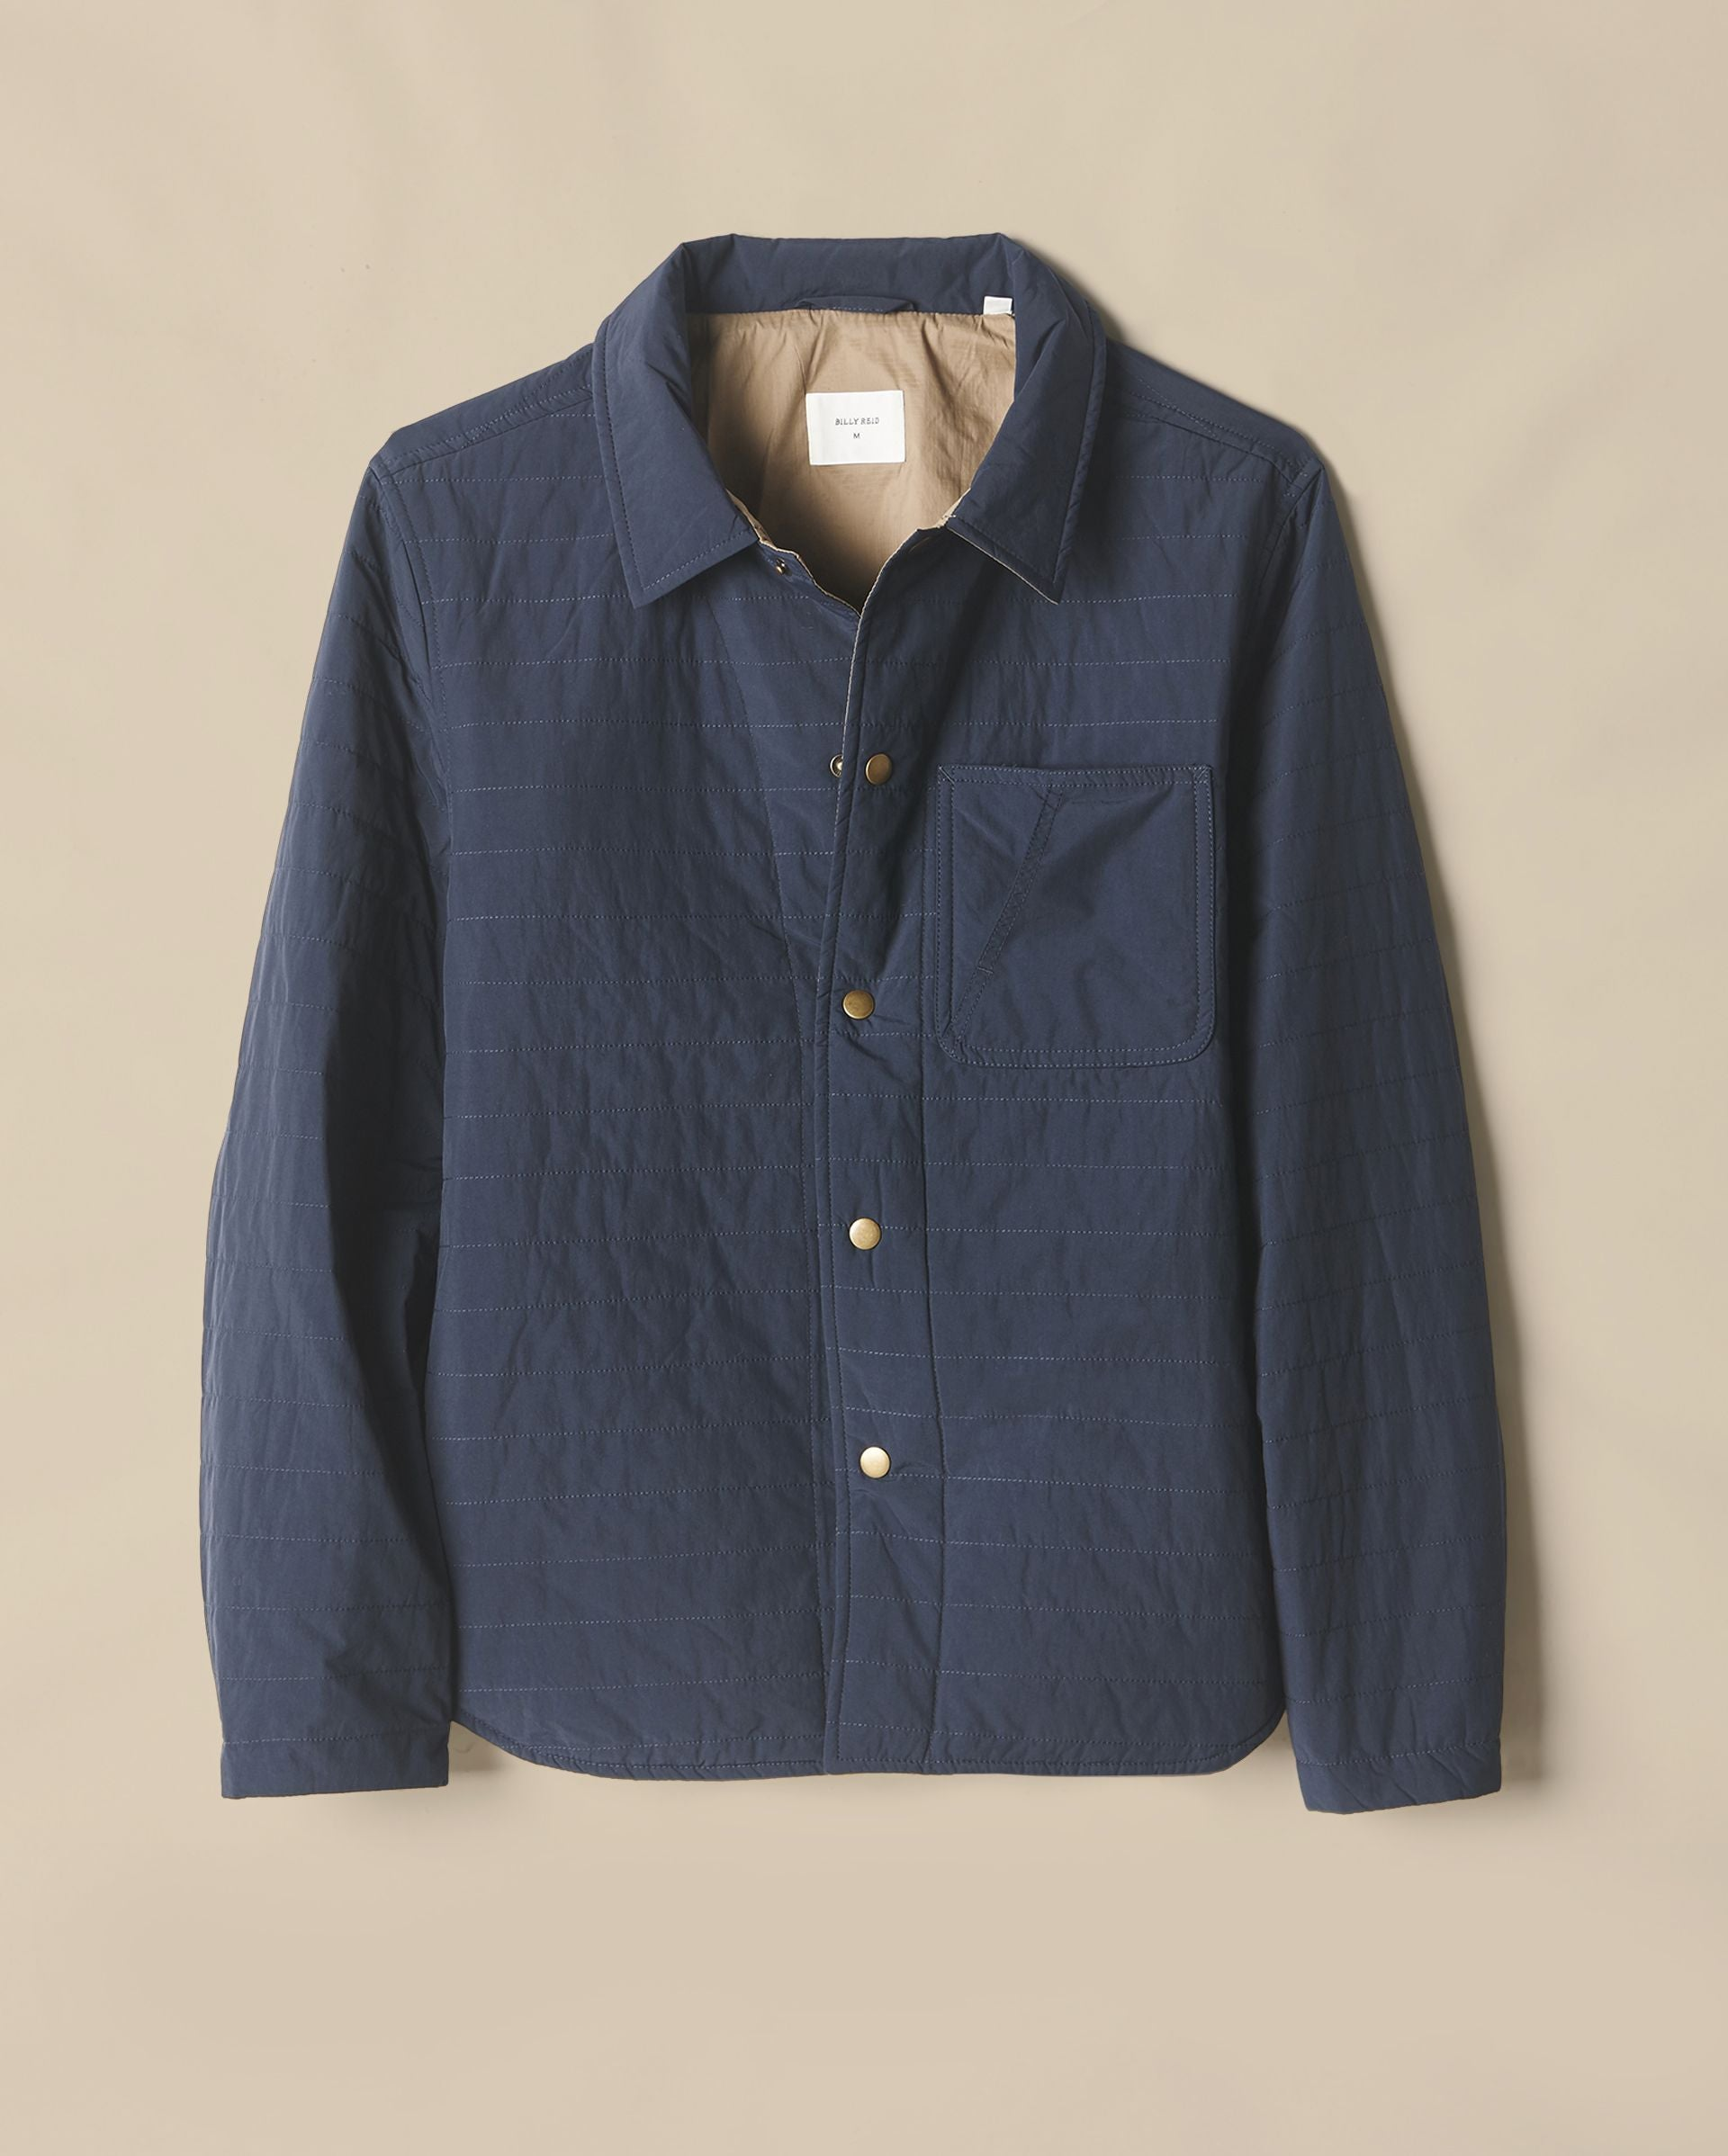 Billy Reid - Leroy Shirt Jacket - Navy